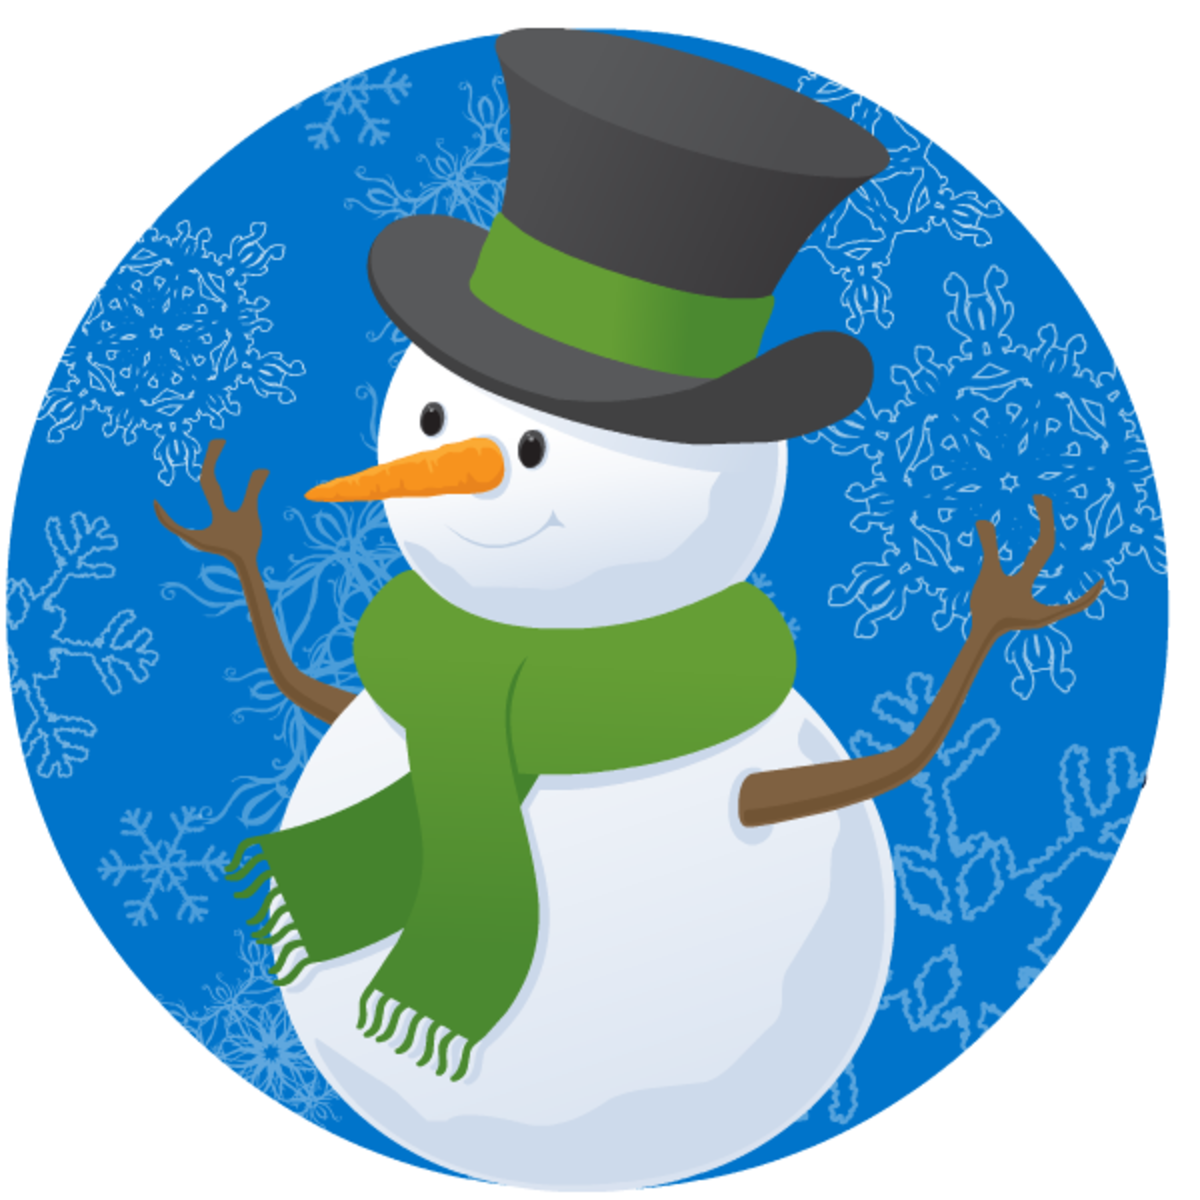 Winter clip art: Snowman in a circle